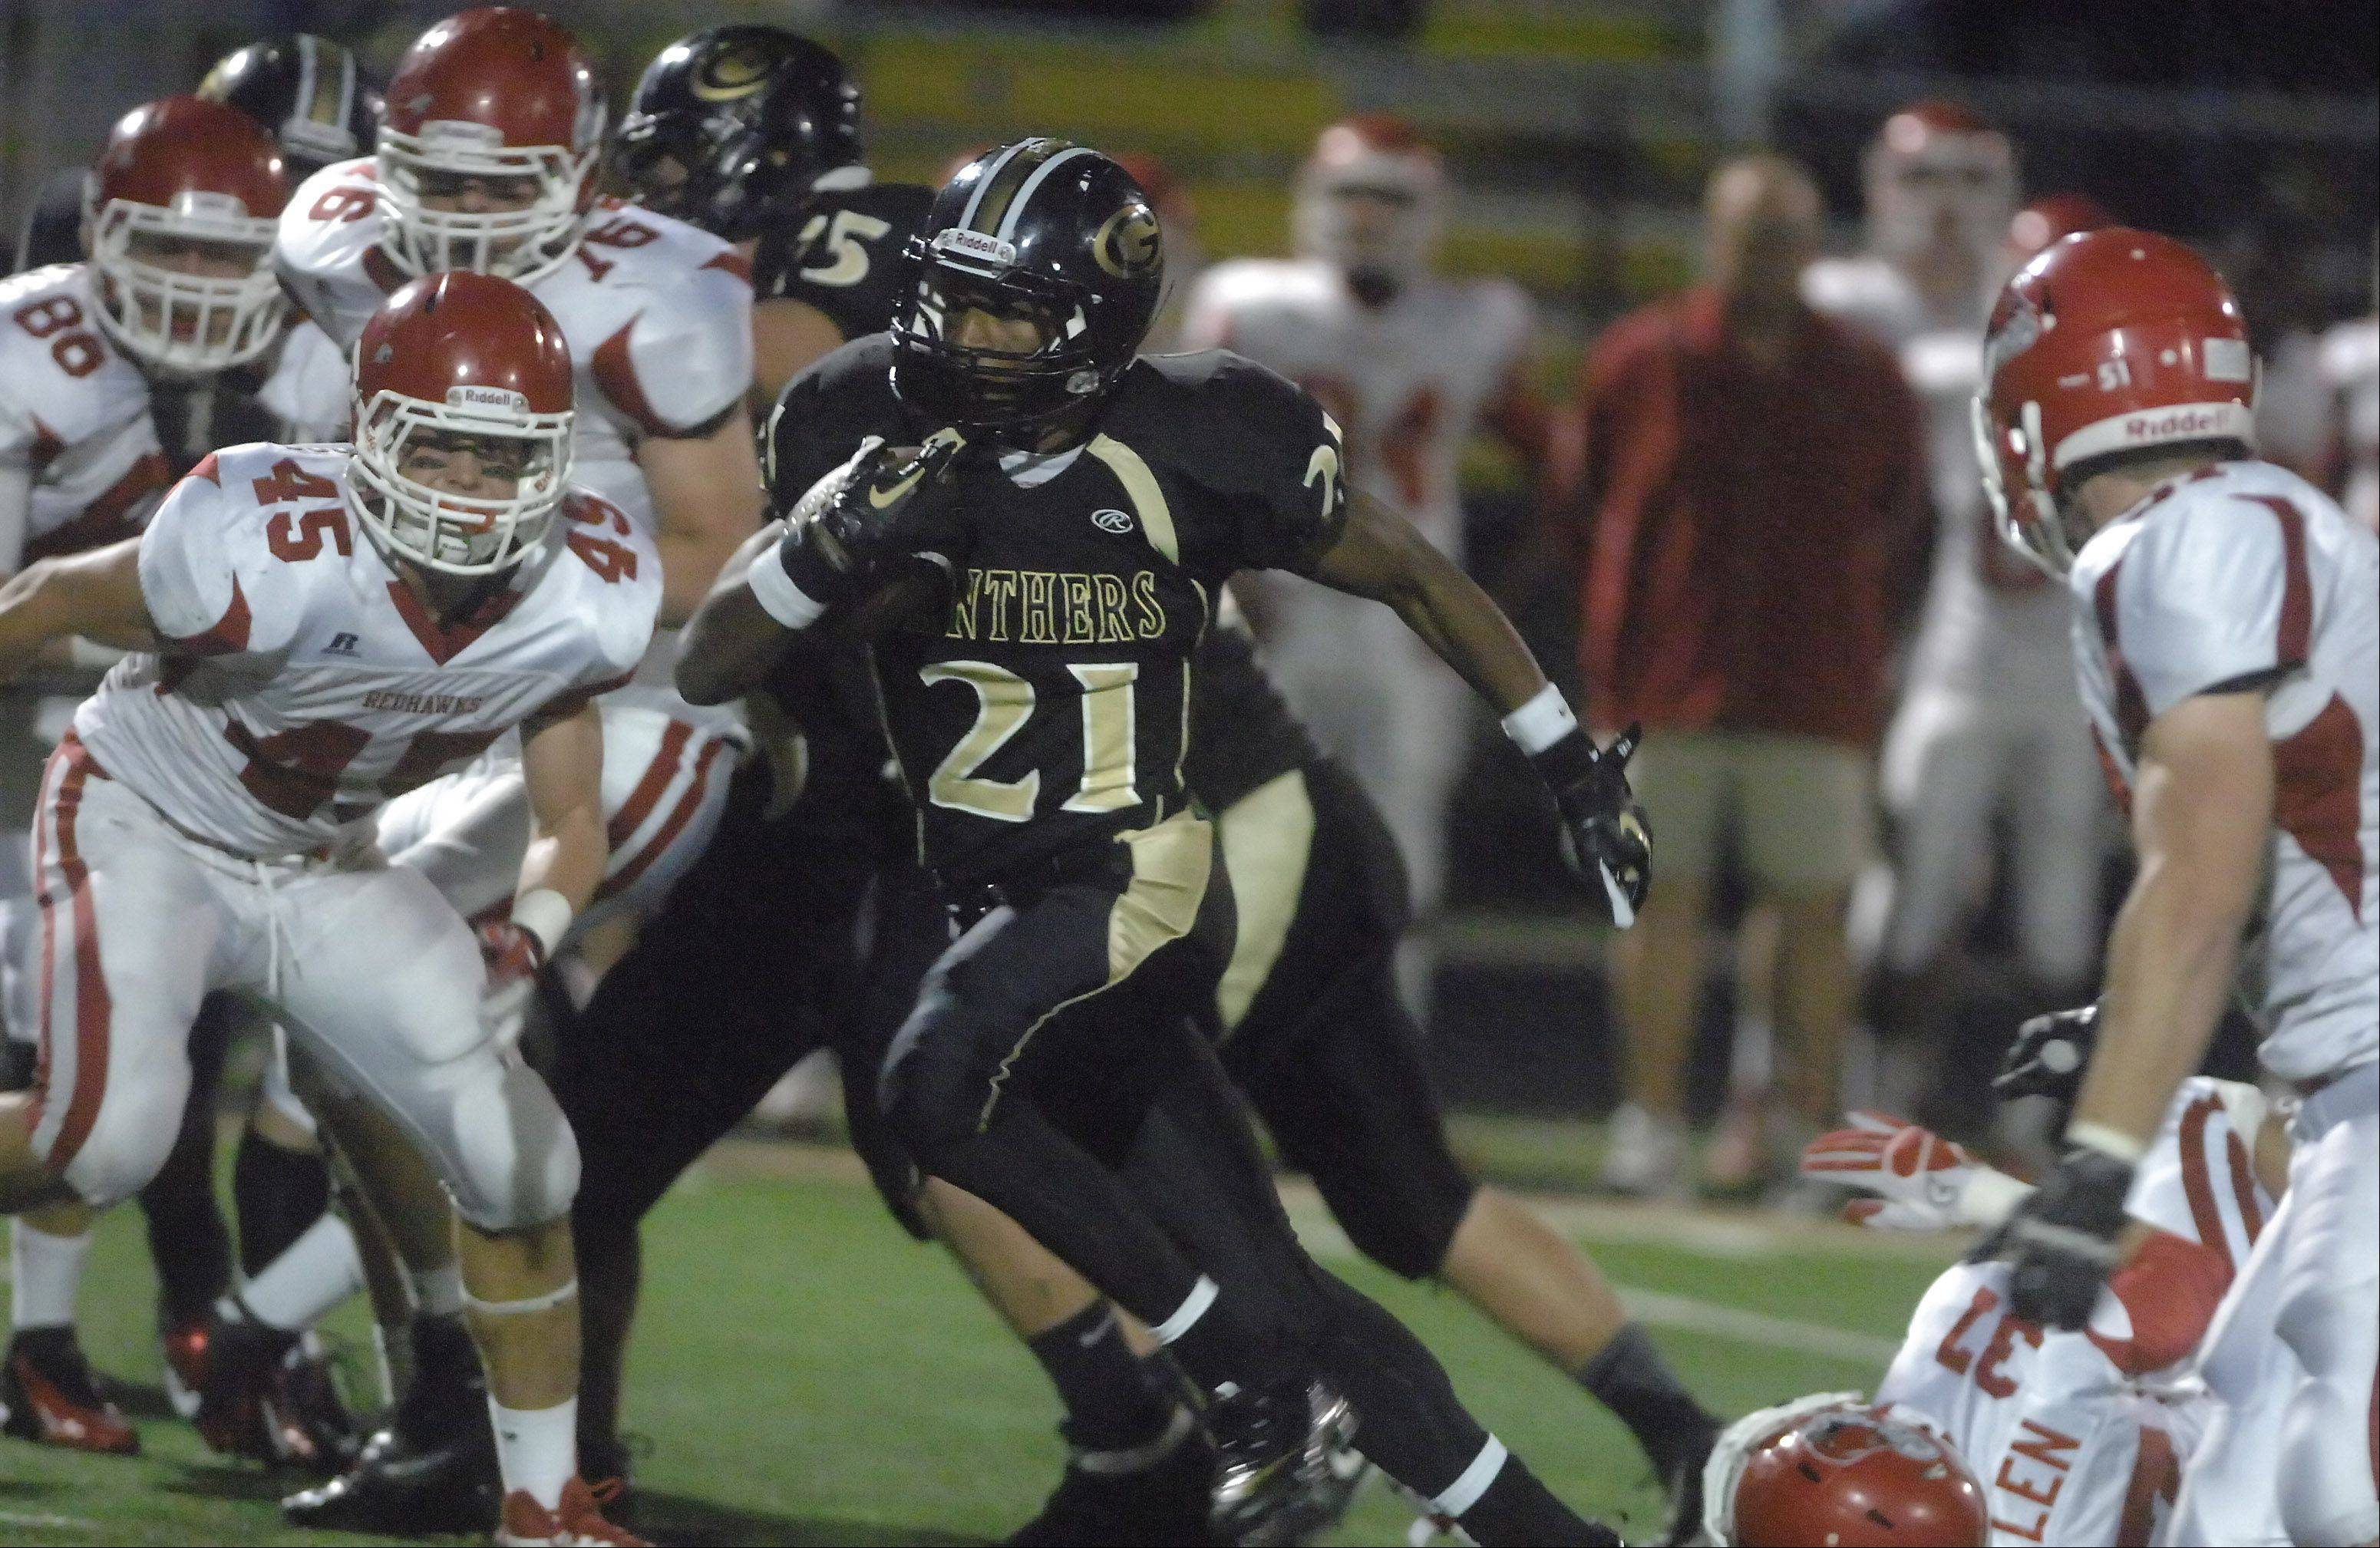 Justin Jackson of Glenbard North moves the ball.